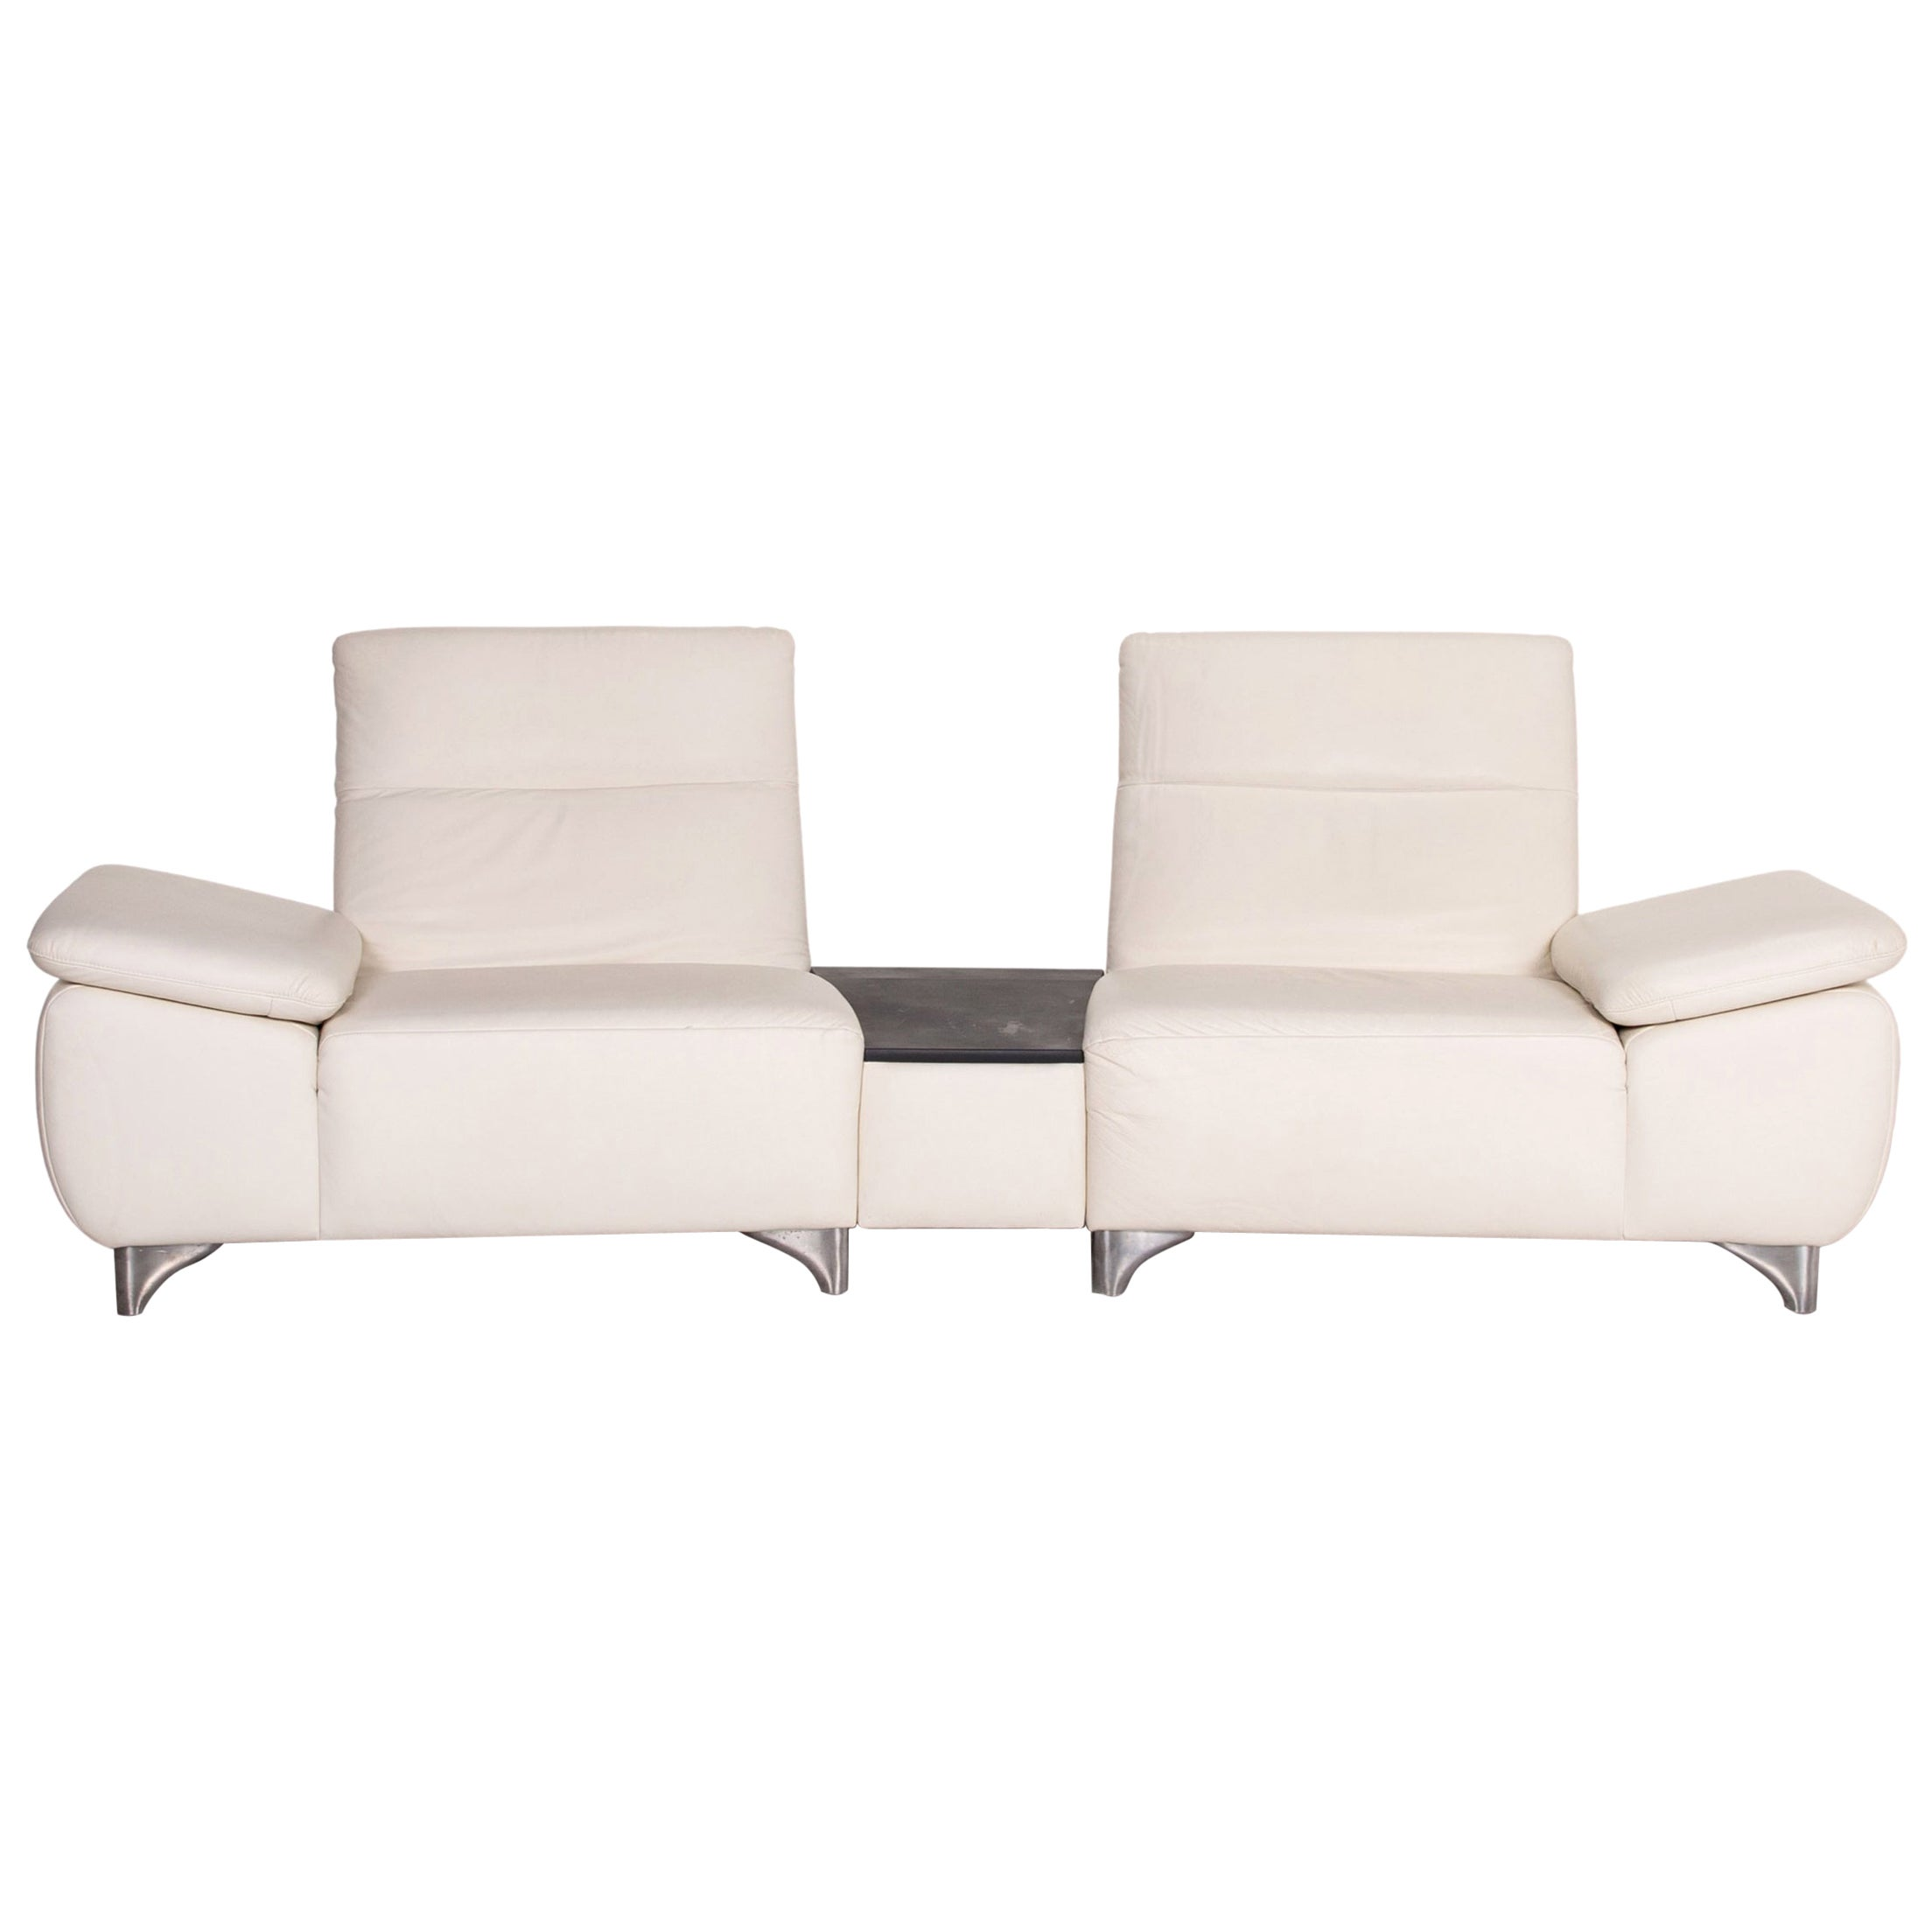 Mondo Leather Sofa White Two-Seat Relax Function Function Couch